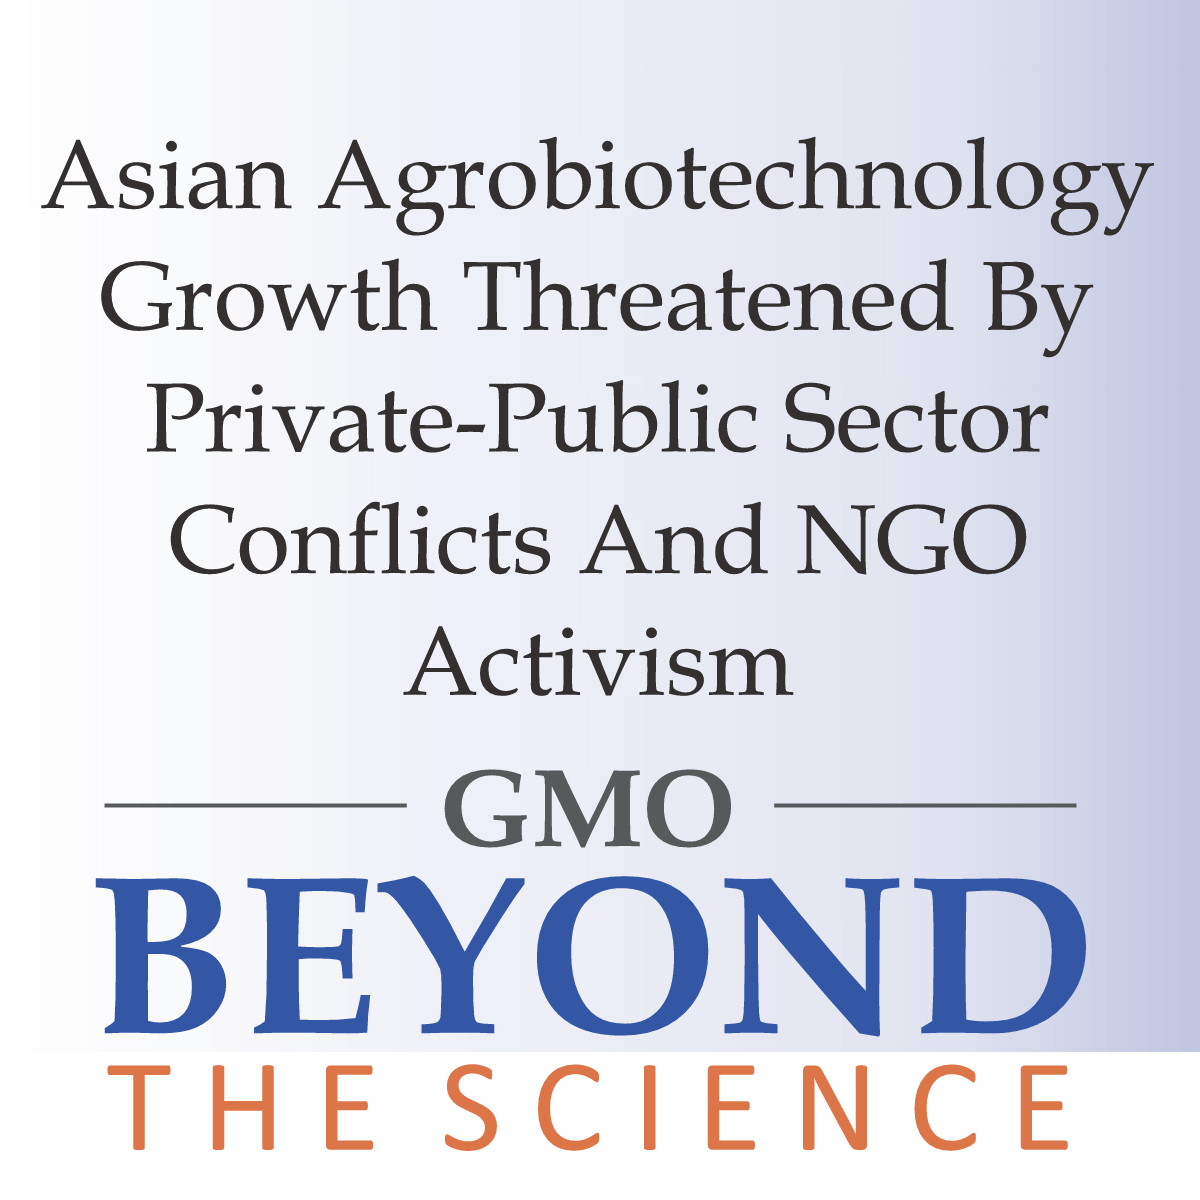 Asian Agrobiotechnology Slowed By Private-Public Sector Tensions And NGO Activism